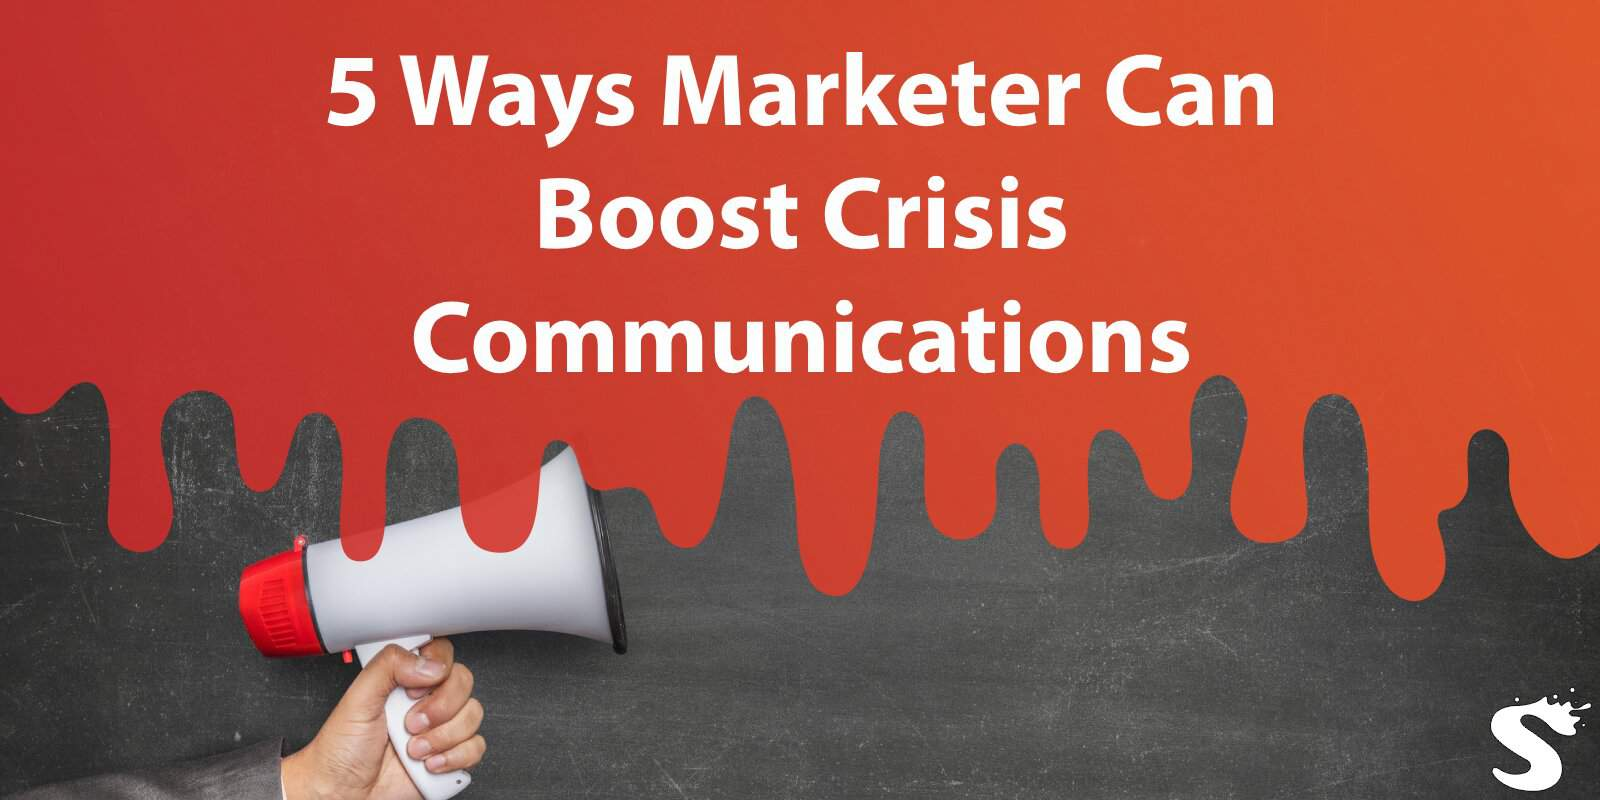 5 Ways Marketer Can Boost Crisis Communications